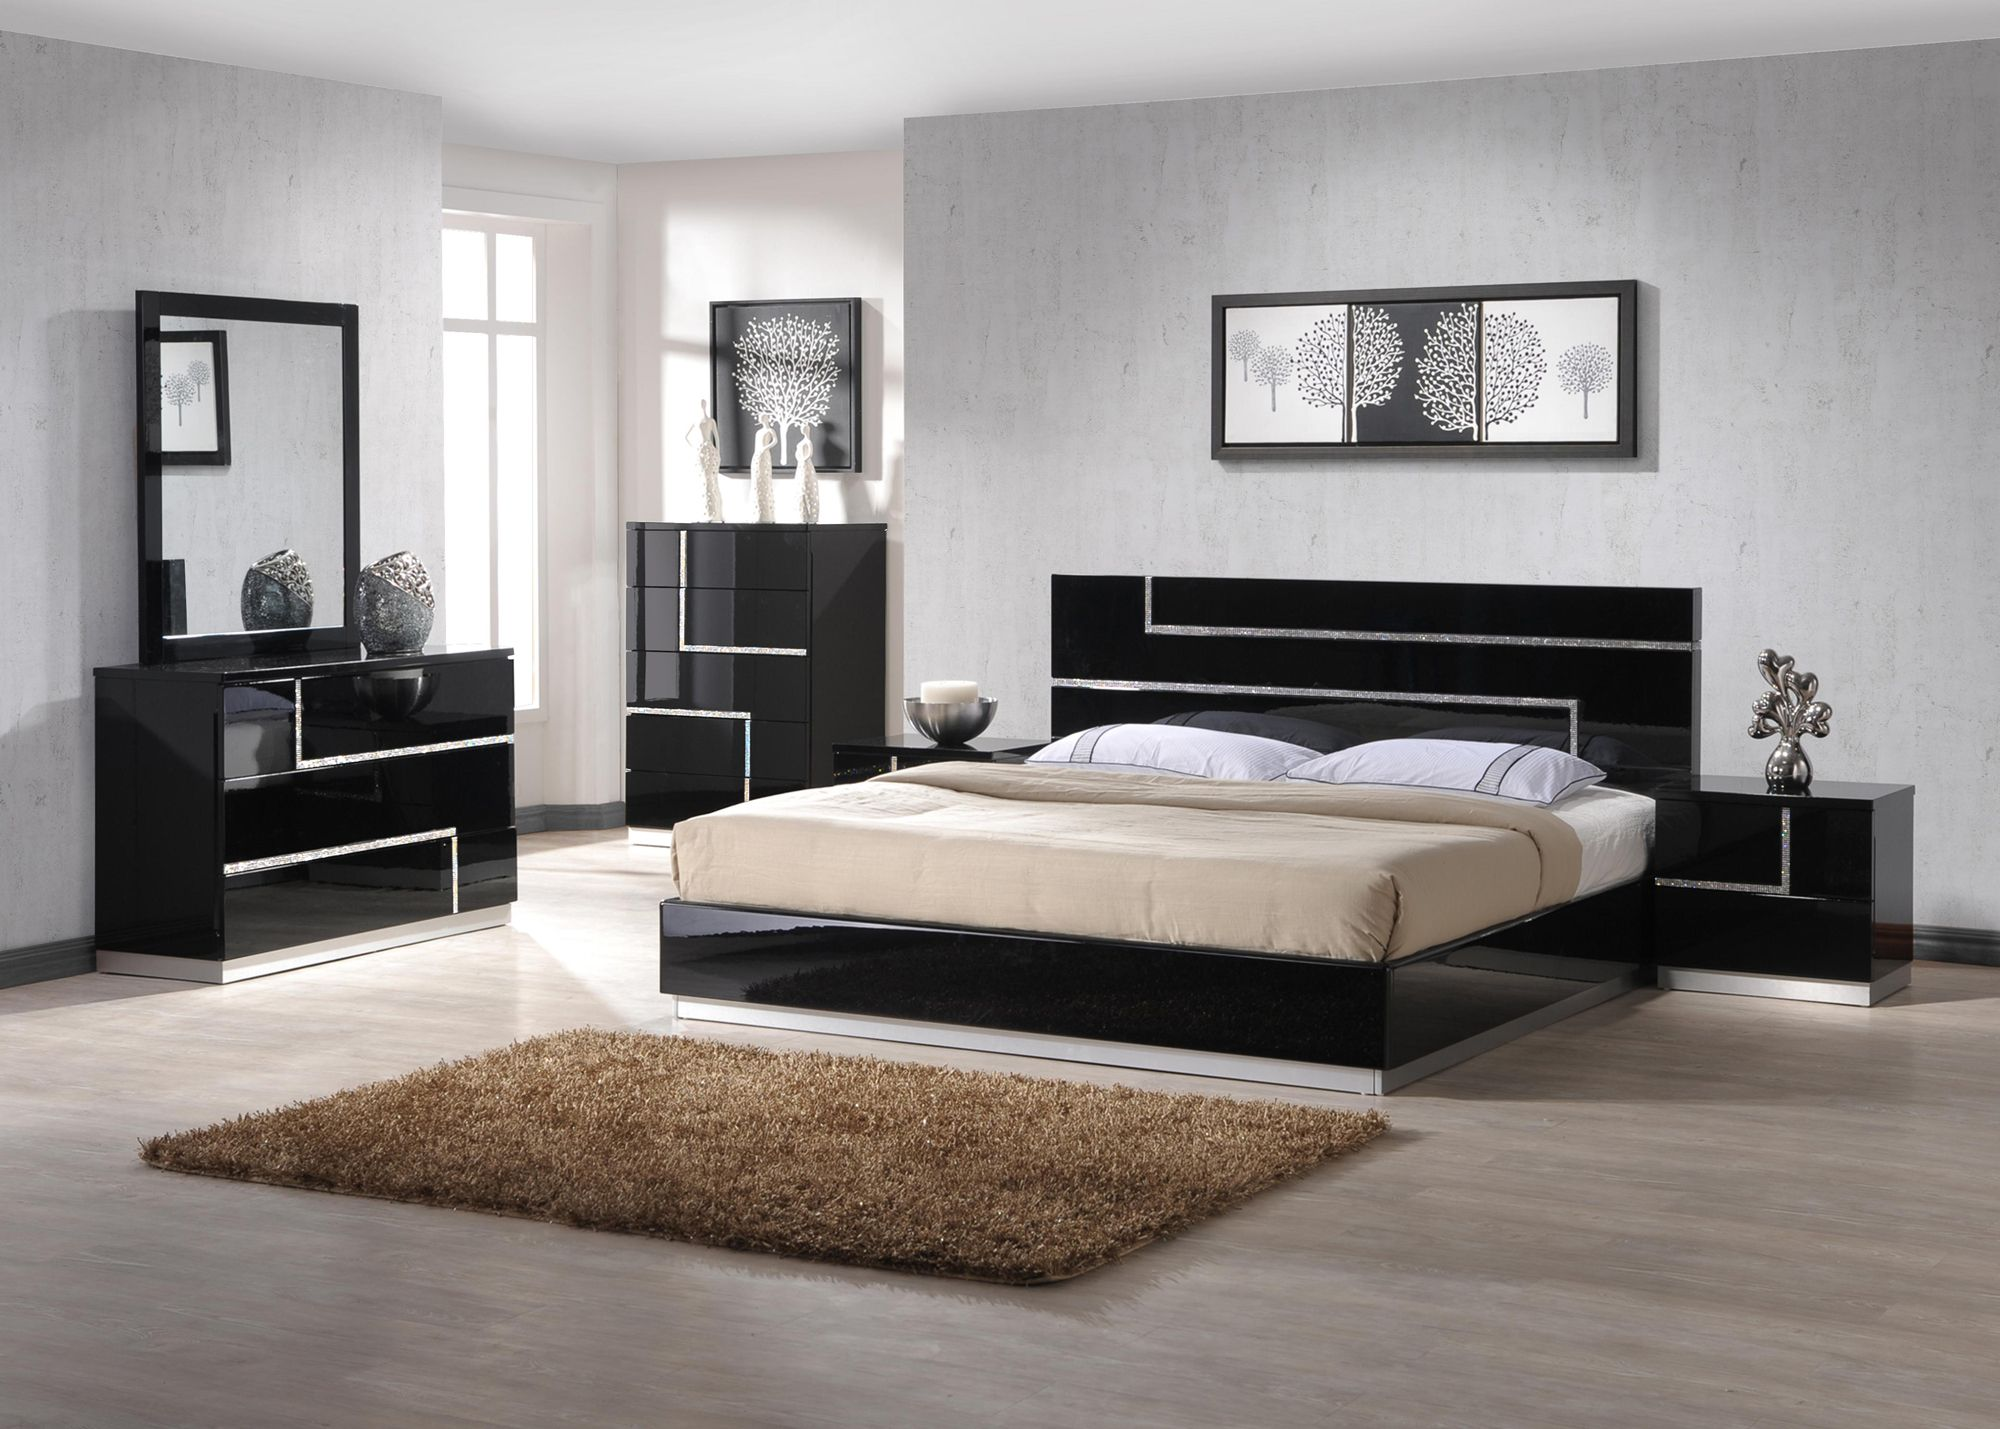 Modern bedroom furniture sets cheap photo design bed - Cheap bedroom furniture sets online ...